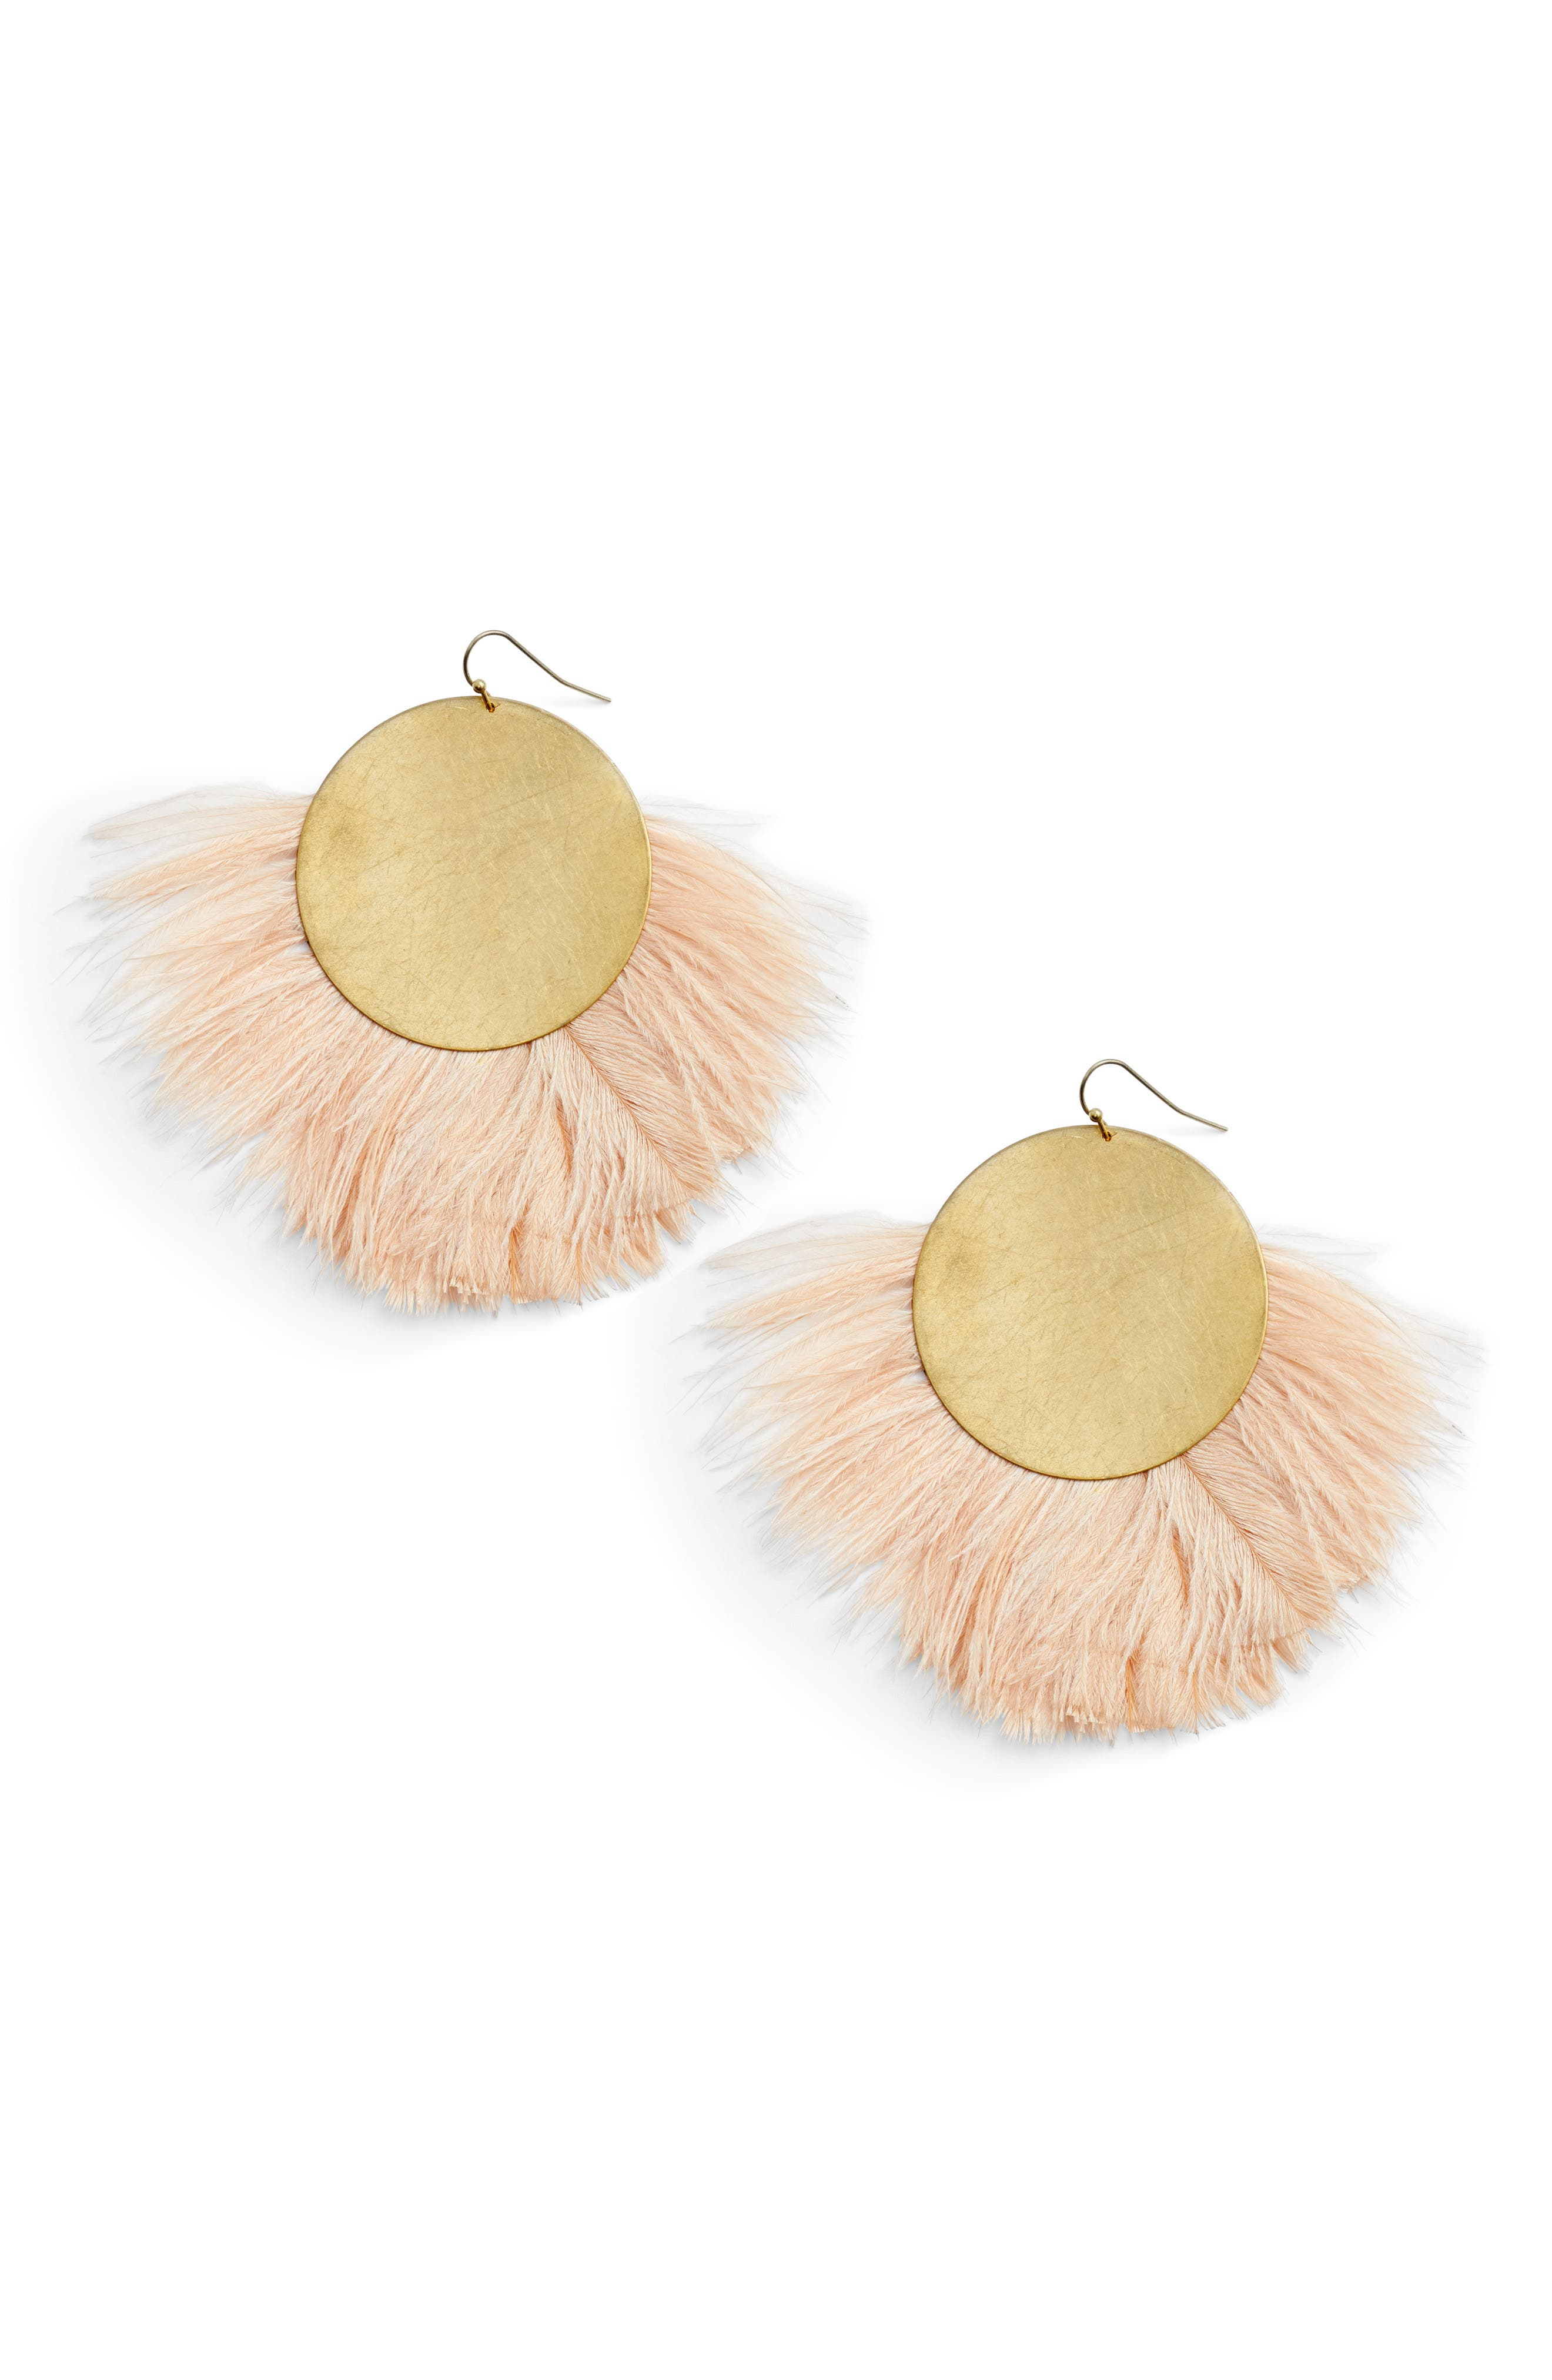 Feather Disc Earrings,                             Main thumbnail 1, color,                             Blush/ Gold